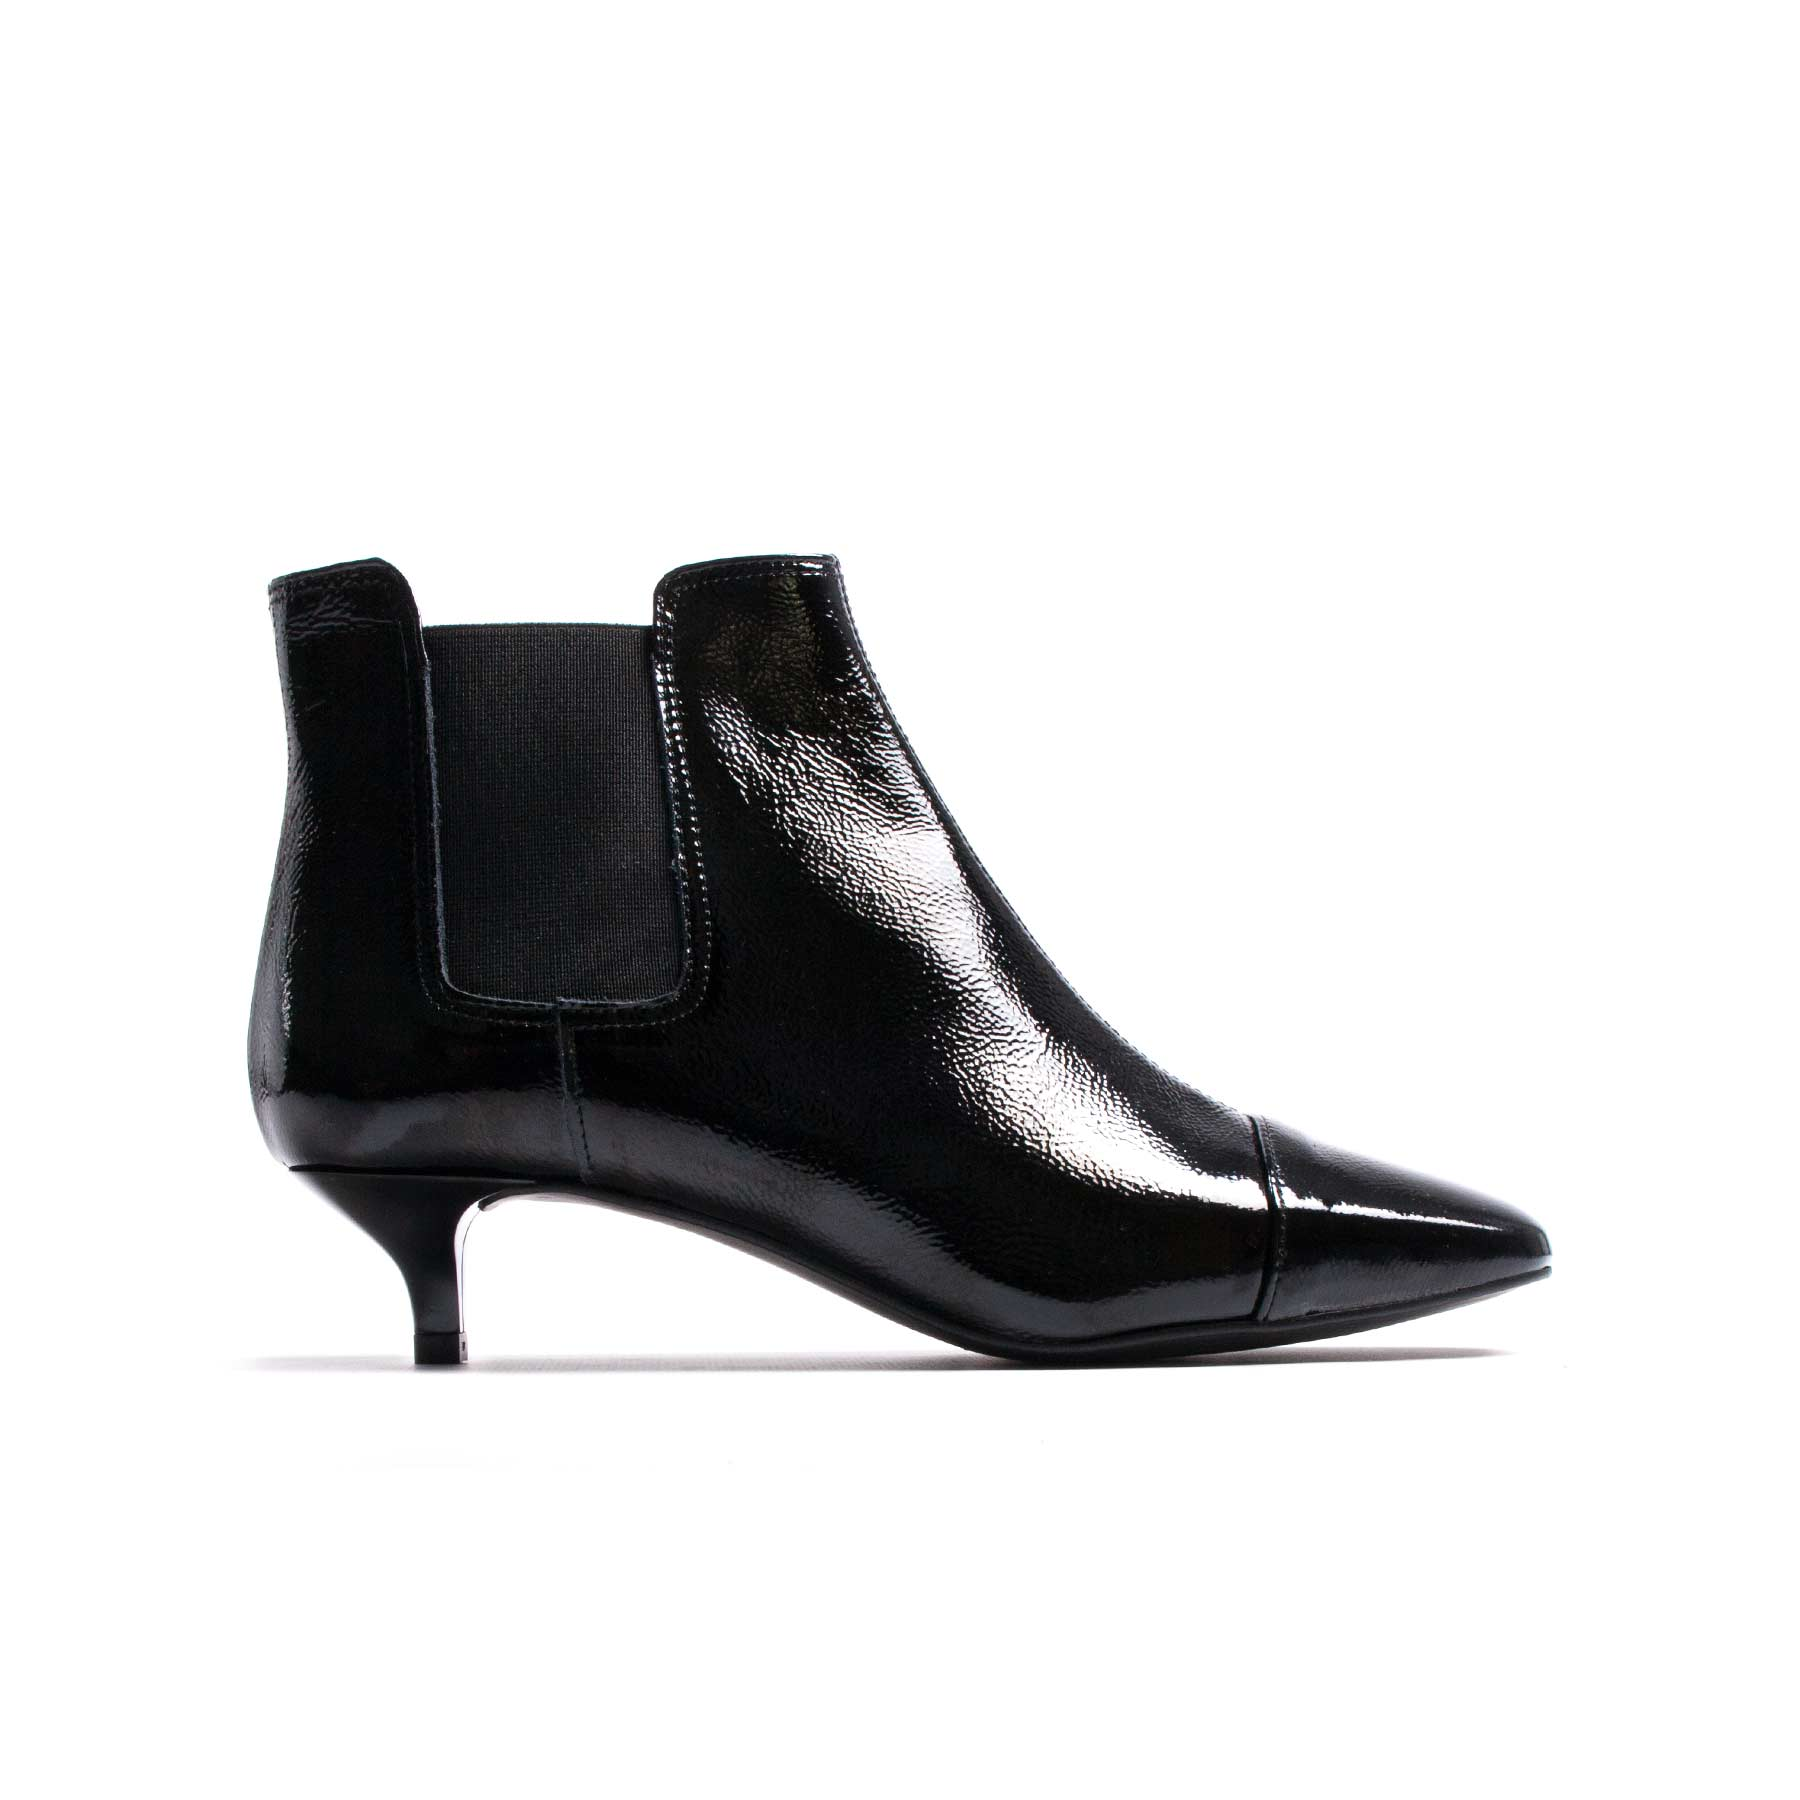 Boots, Atwood Black Patent Leather - Lintervalle shoes for woman